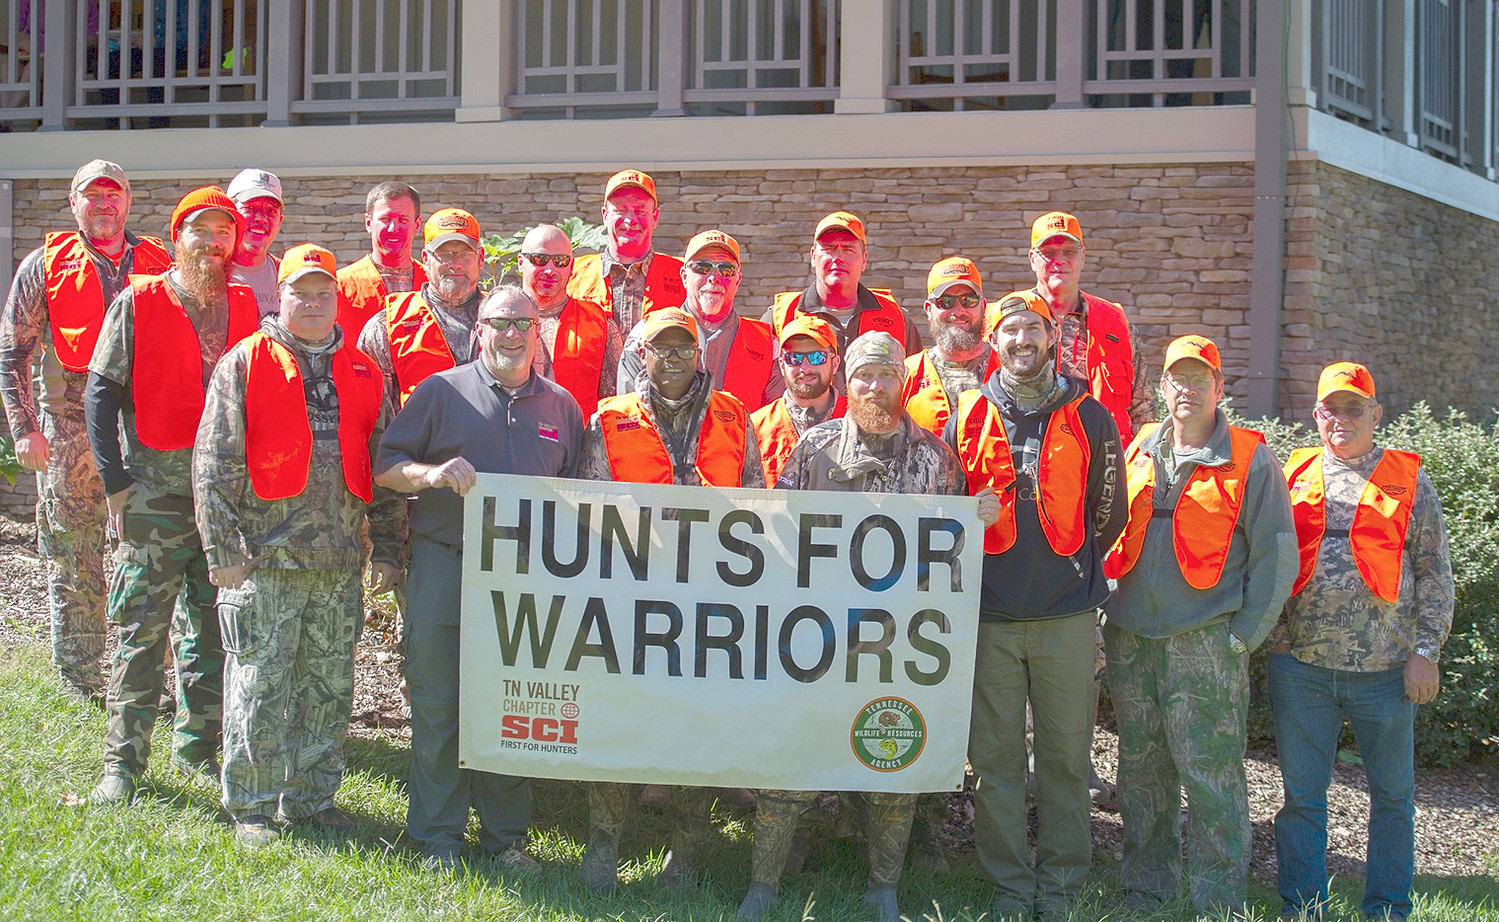 SEVERAL VETERANS AND SERVICEMEN participated in the recent Enterprise South Nature Park Wounded Warrior Hunt.